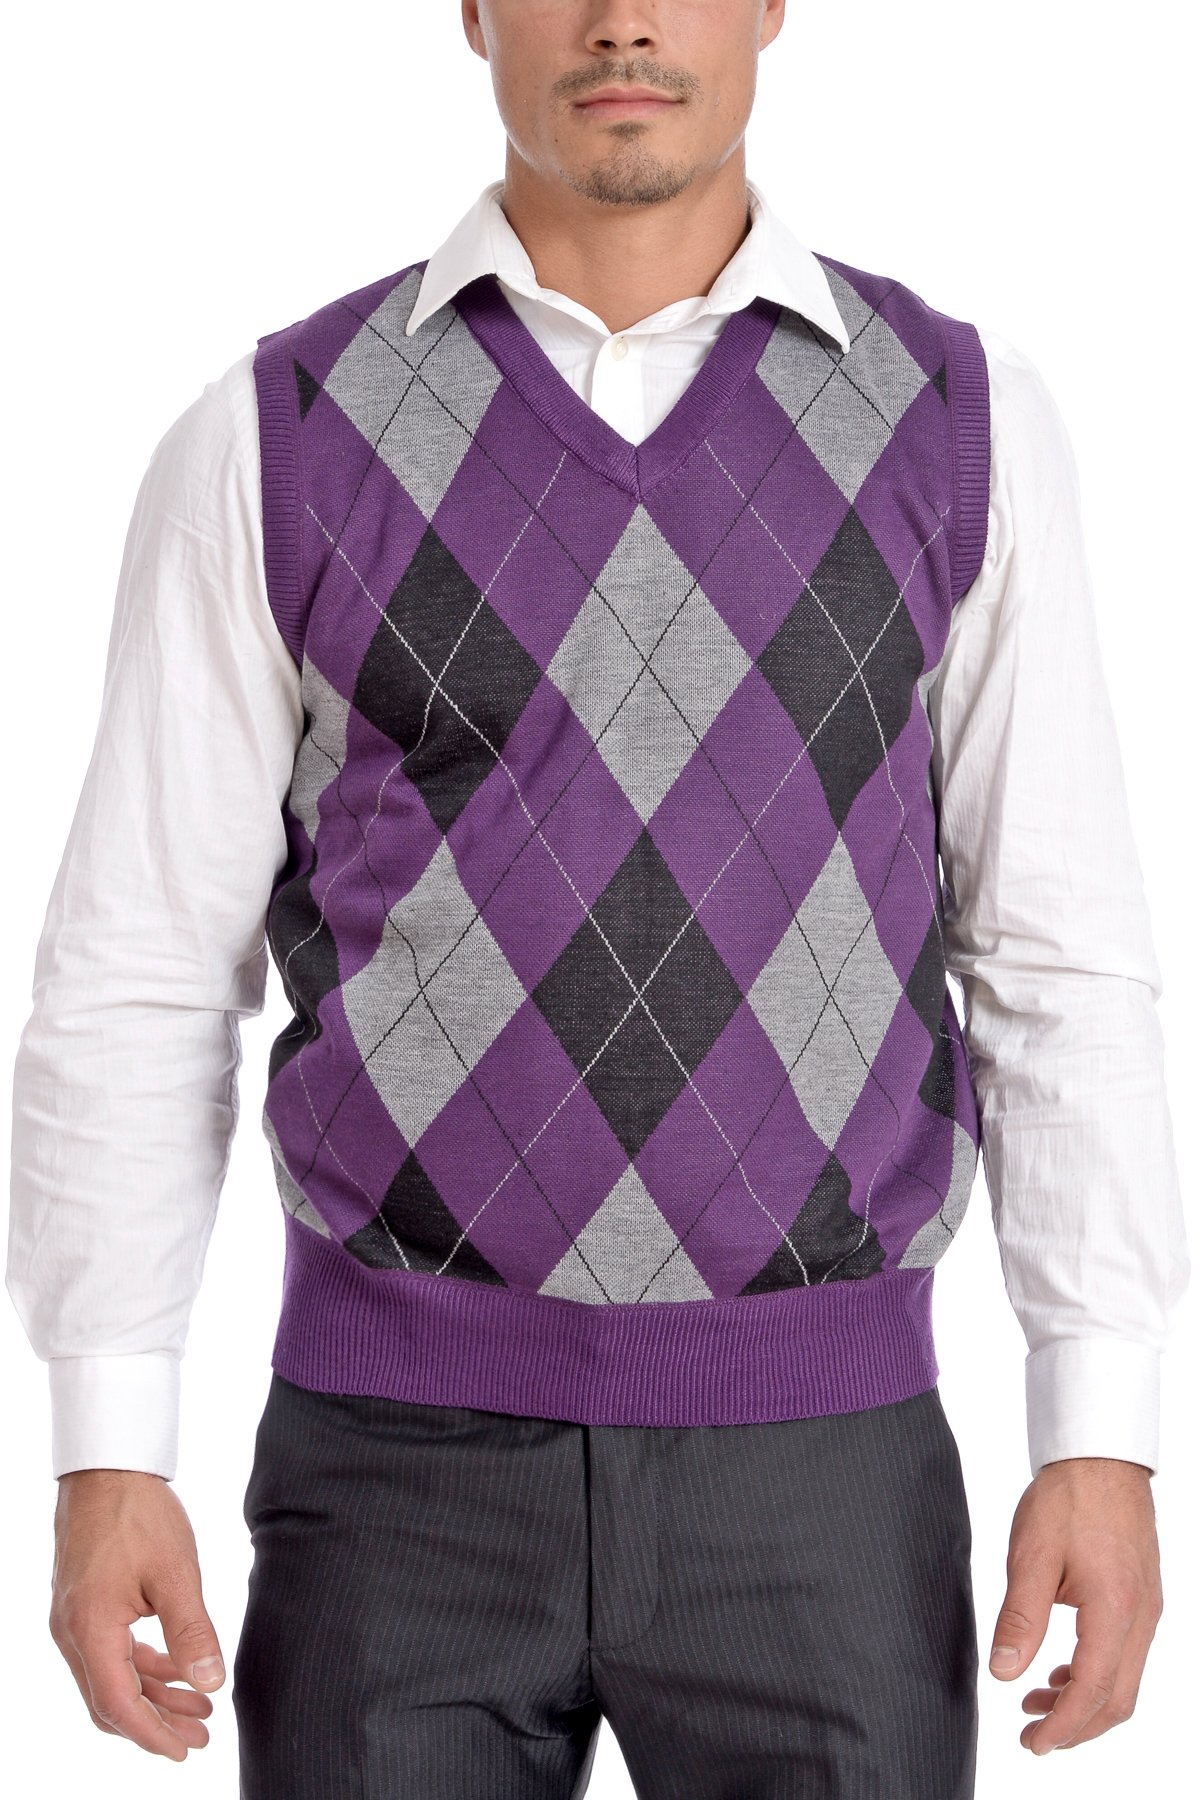 TR Fashion Men's Soft Stretch Argyle V-Neck Casual Pullover Vest (Eggplant, X-Large) by TR Fashion